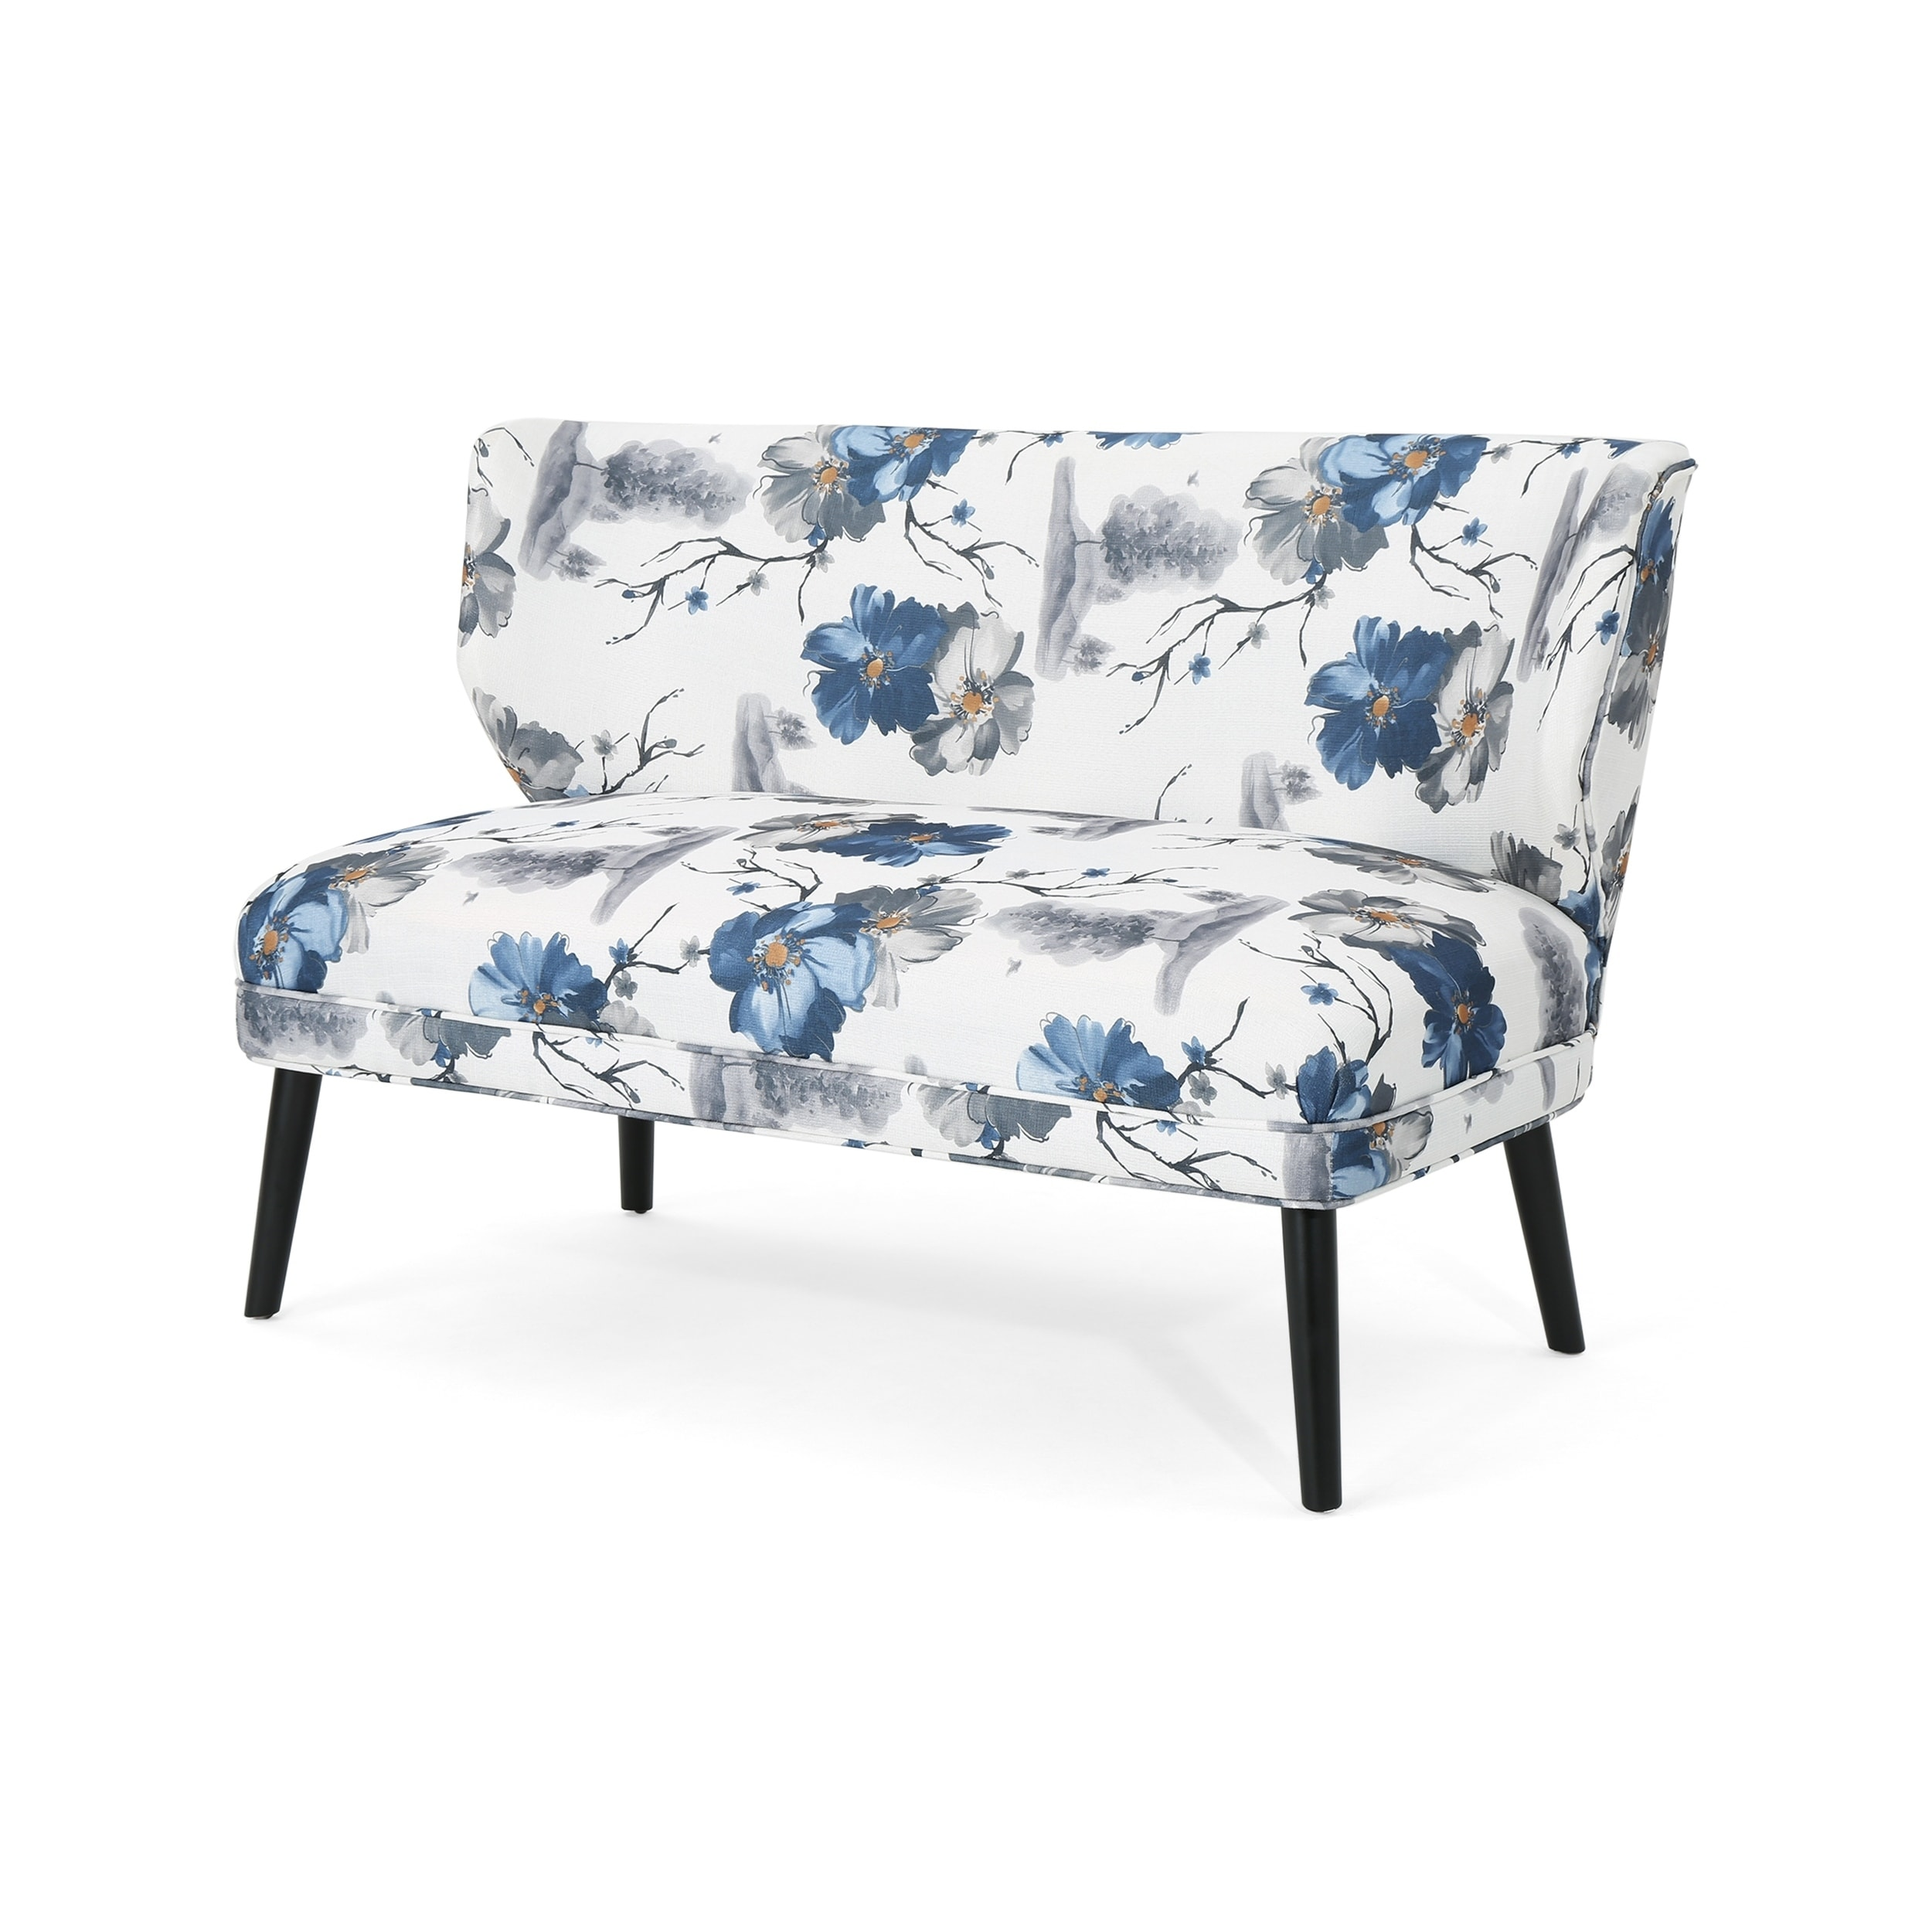 Shop Desdemona Modern Farmhouse Fabric Settee By Christopher Knight